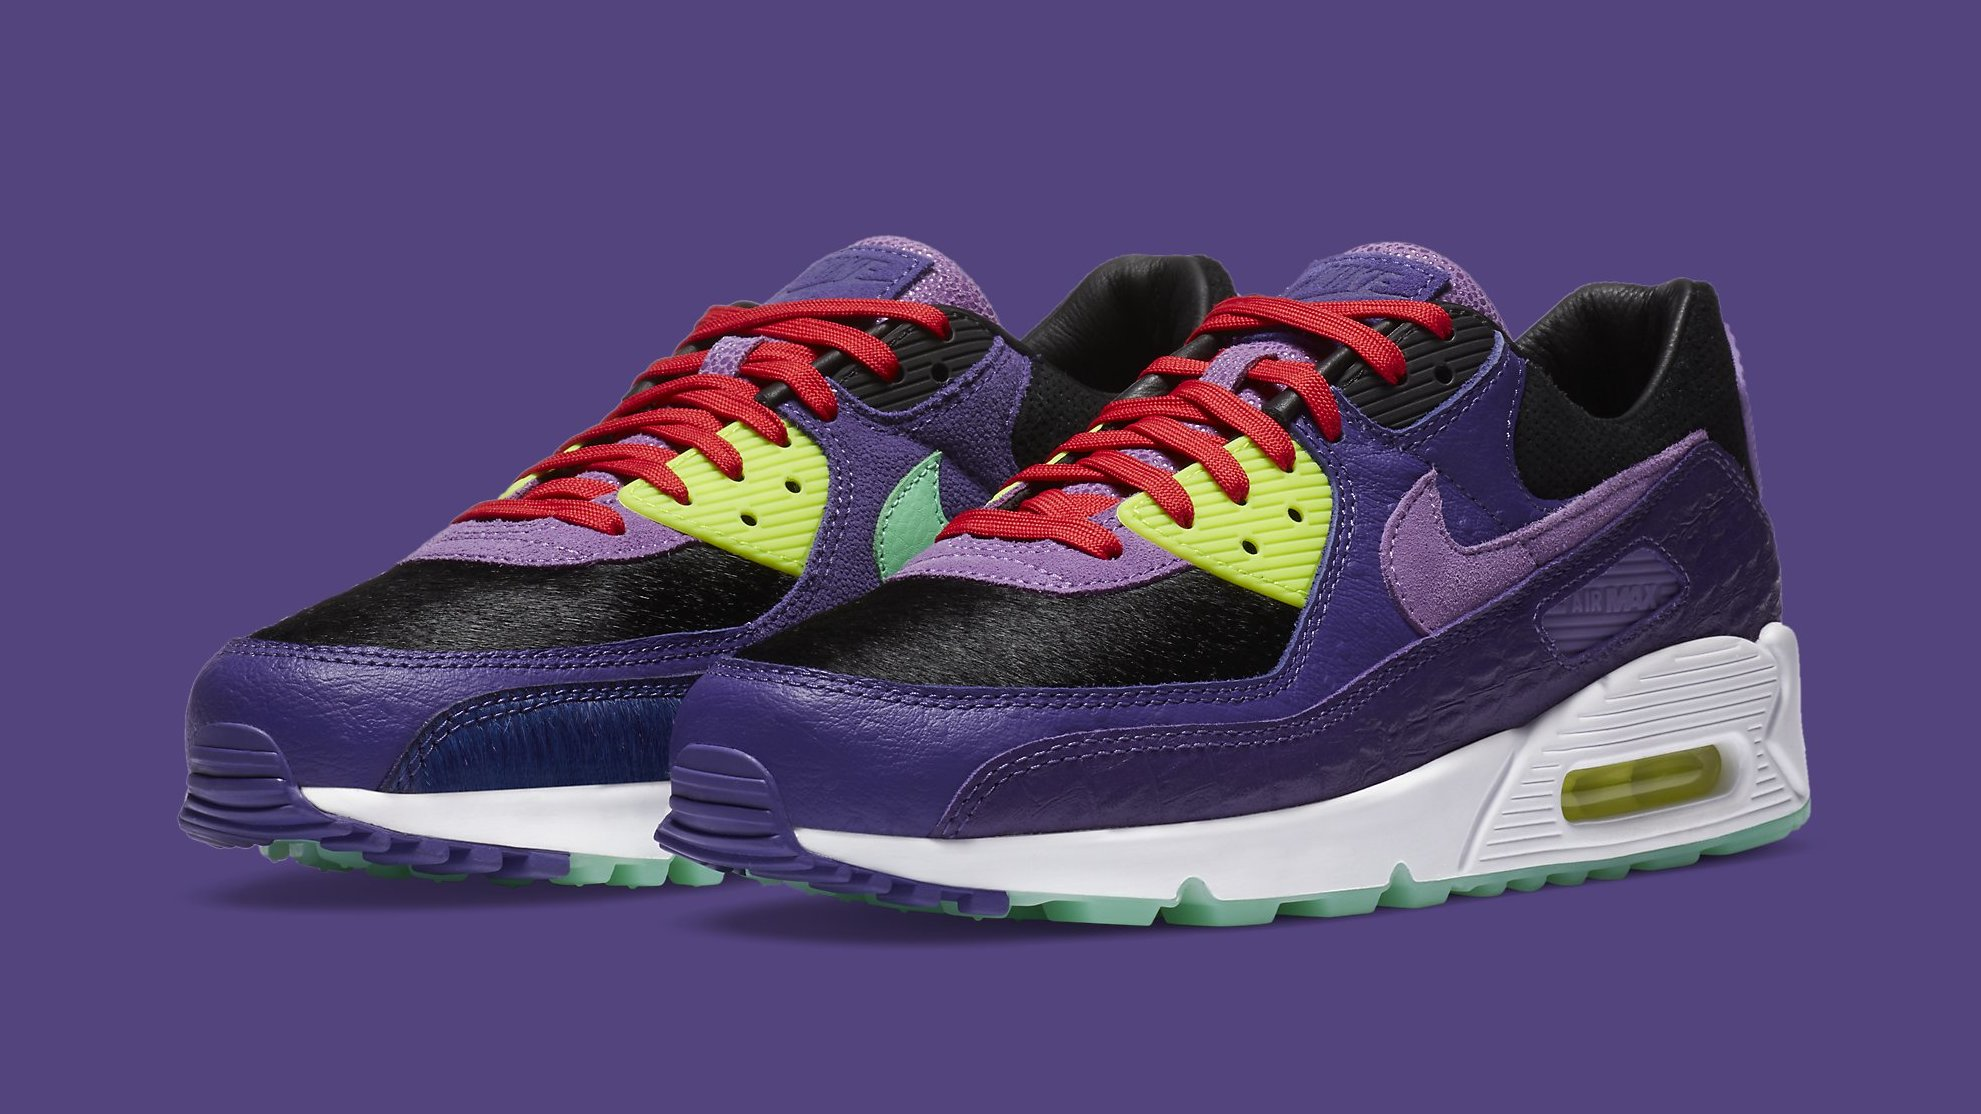 Nike Air Max 90 'Violet Blend' Release Date CZ5588-001 | Sole ...